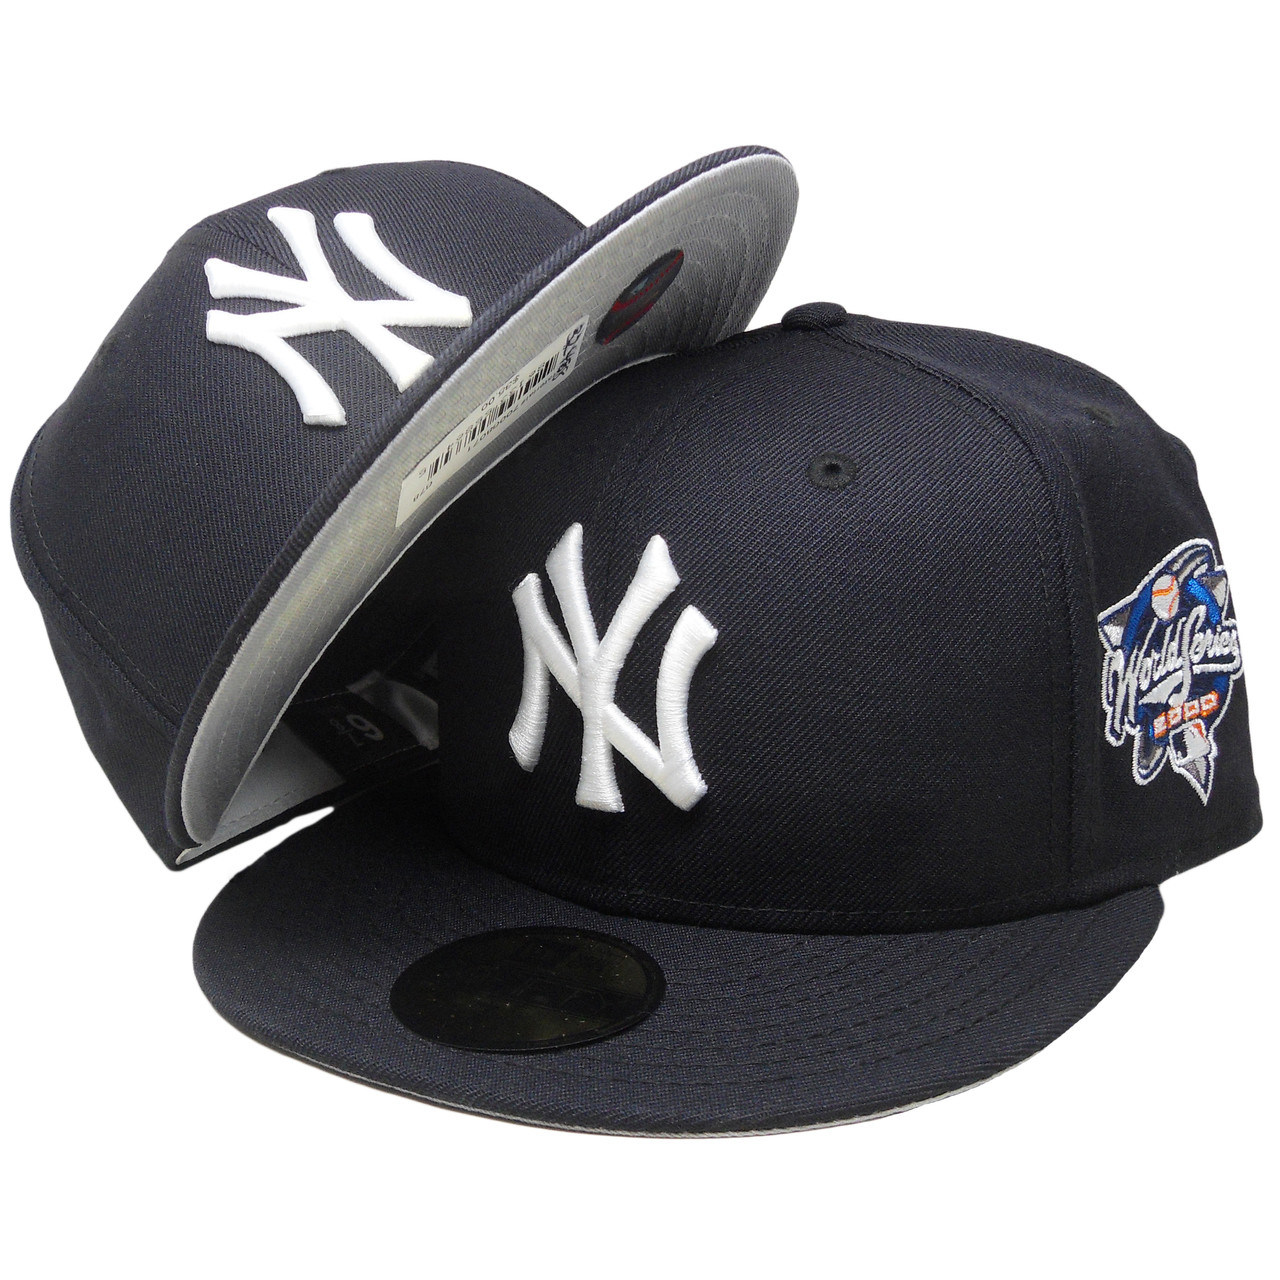 finest selection 4e144 92093 New York Yankees New Era Custom 2000 WS 59Fifty Fitted - Navy, White, Royal